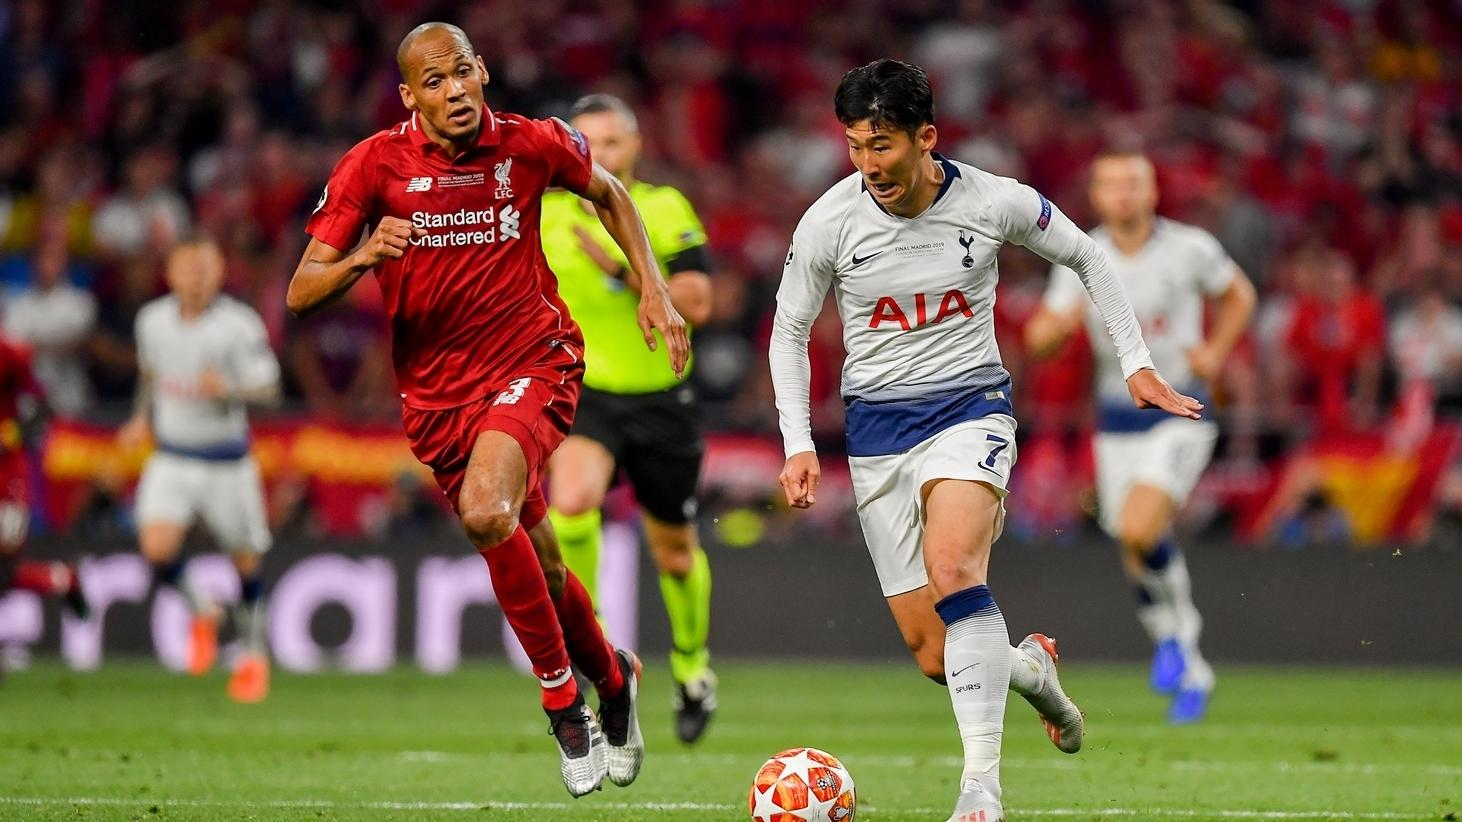 2019/20 UEFA Champions League participants | UEFA Champions League ...